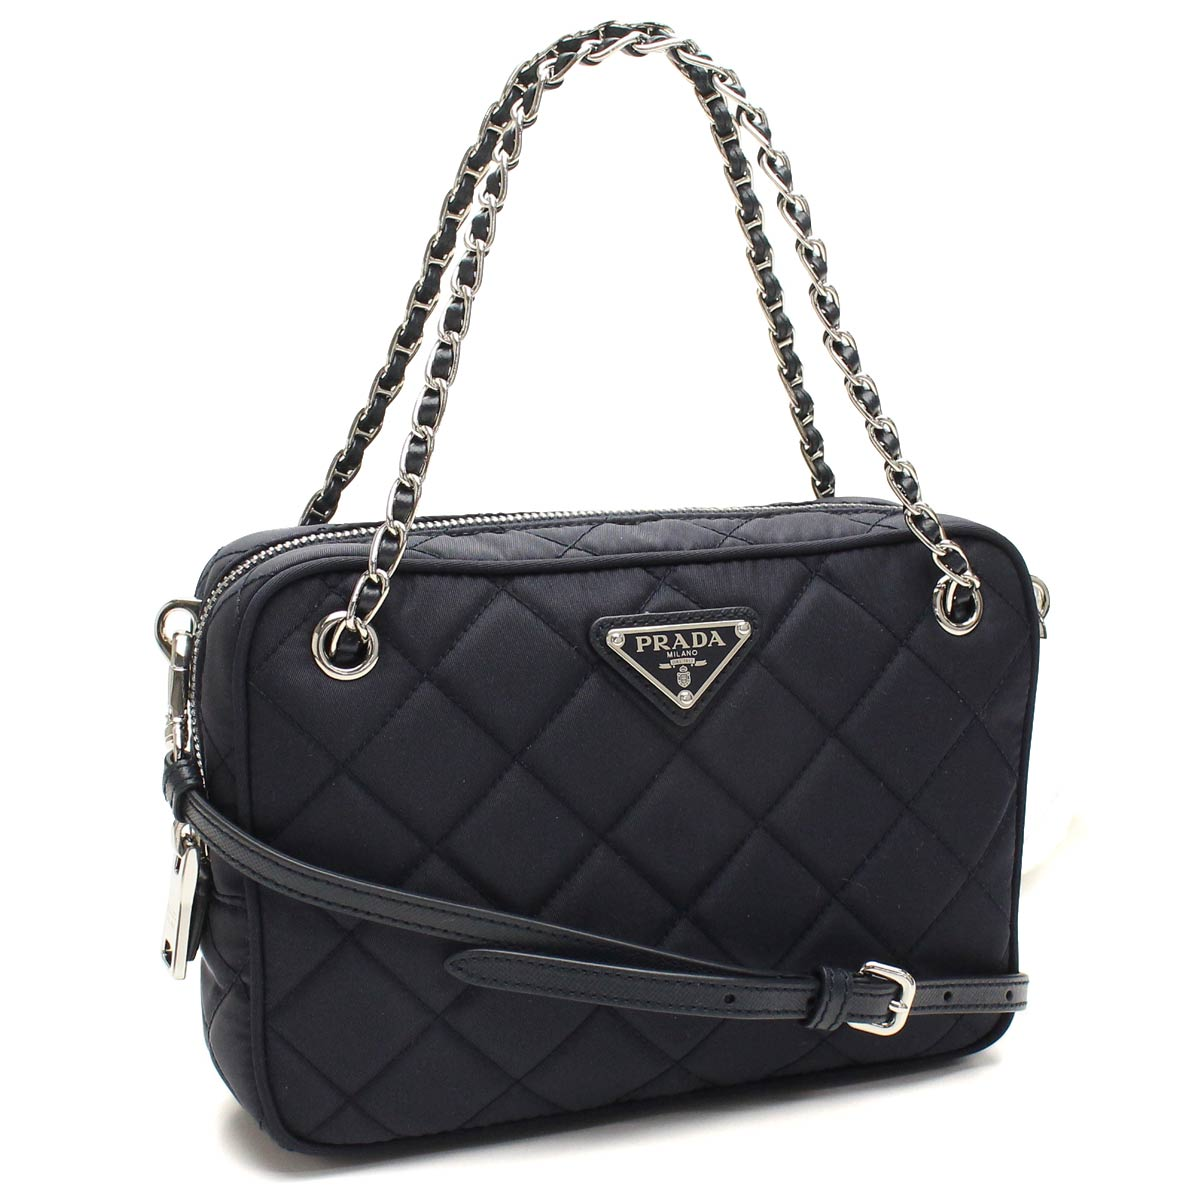 0bf0c6c054be Bighit The total brand wholesale: Prada outlet PRADA (OUTLET) handbag  bl0910-yo-2as3-f0008 BLEU Navy( taxfree/send by EMS/authentic/A brand new  item ) ...